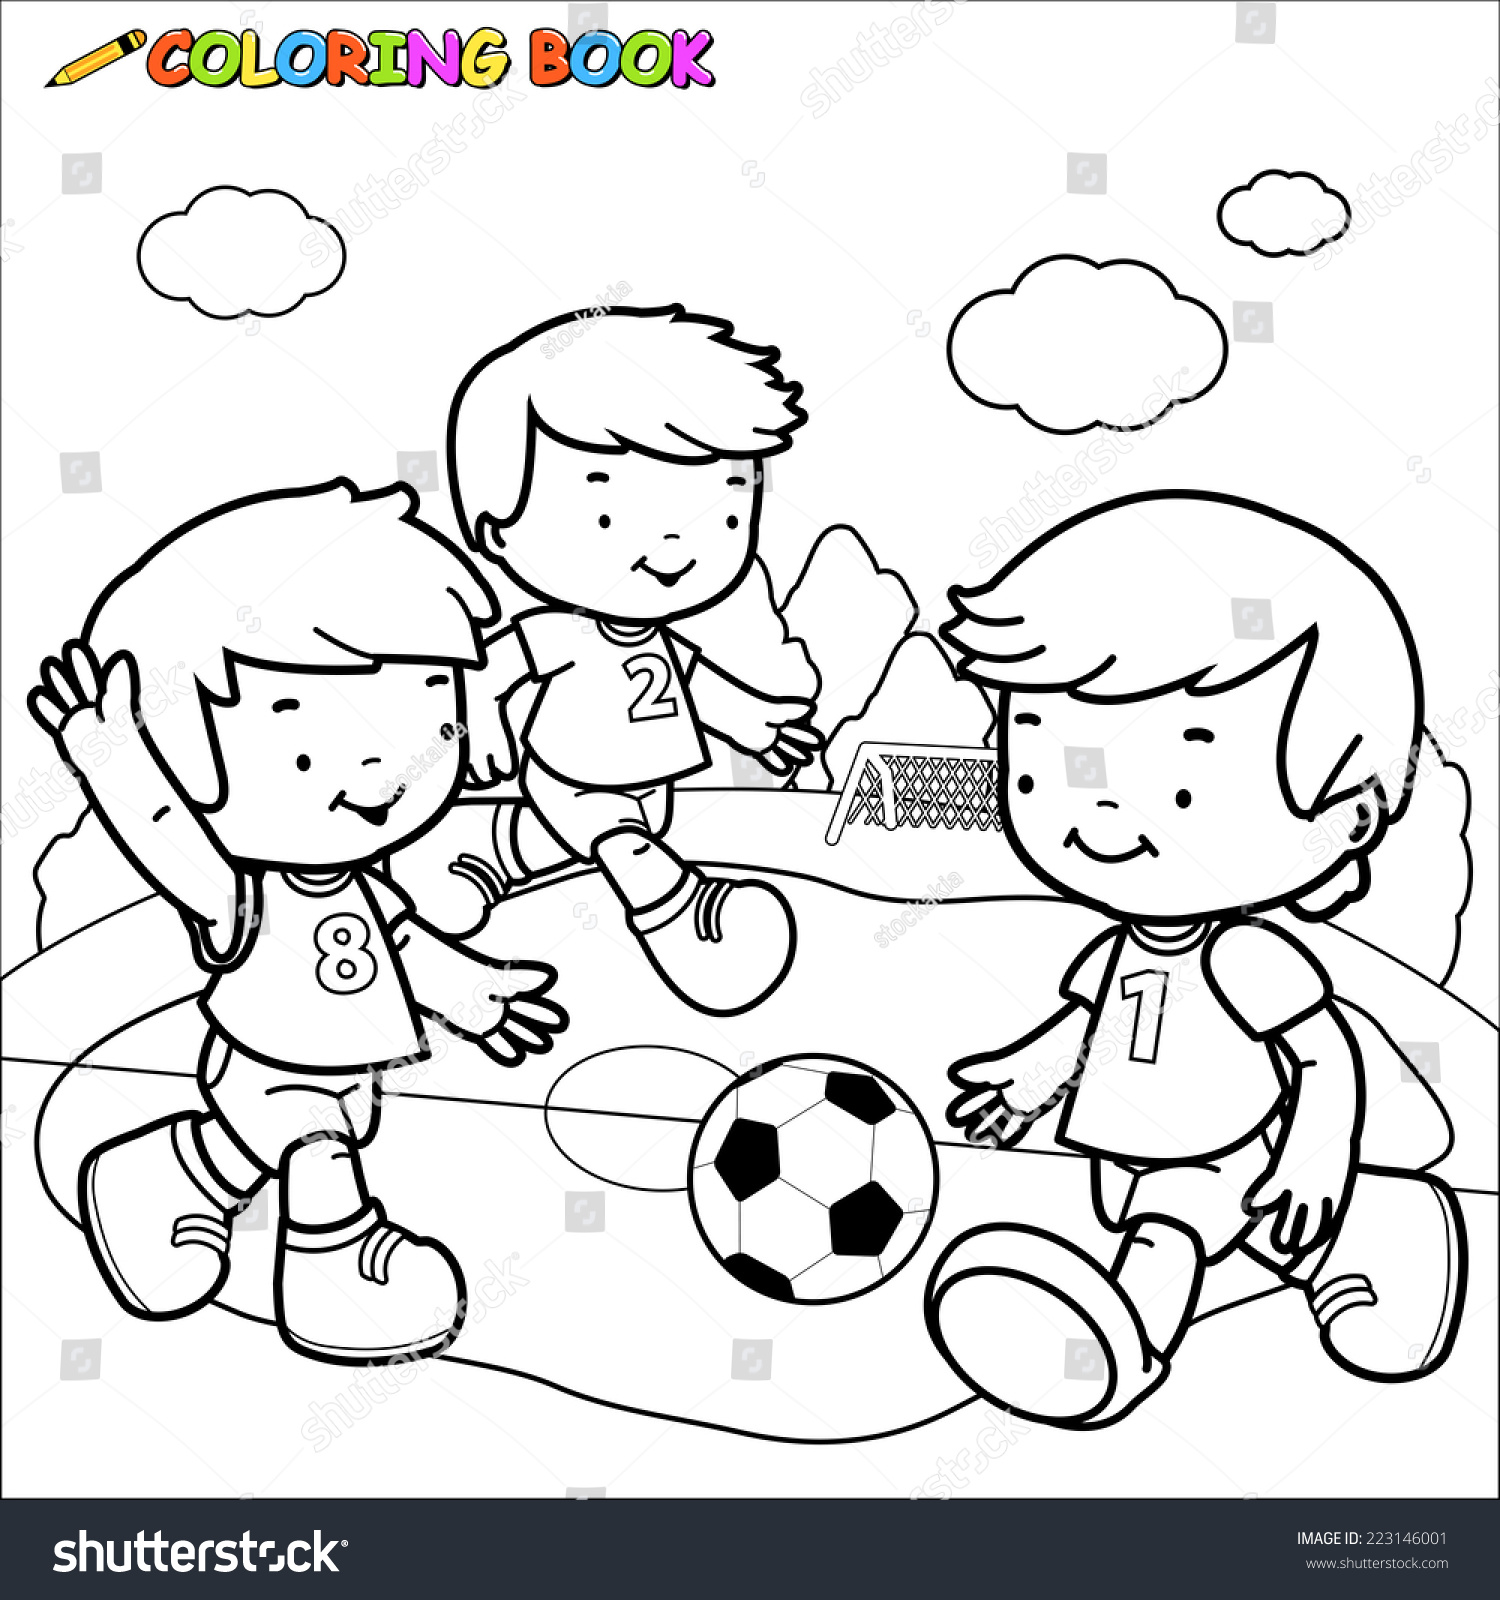 Outline image of three little boys playing football coloring book